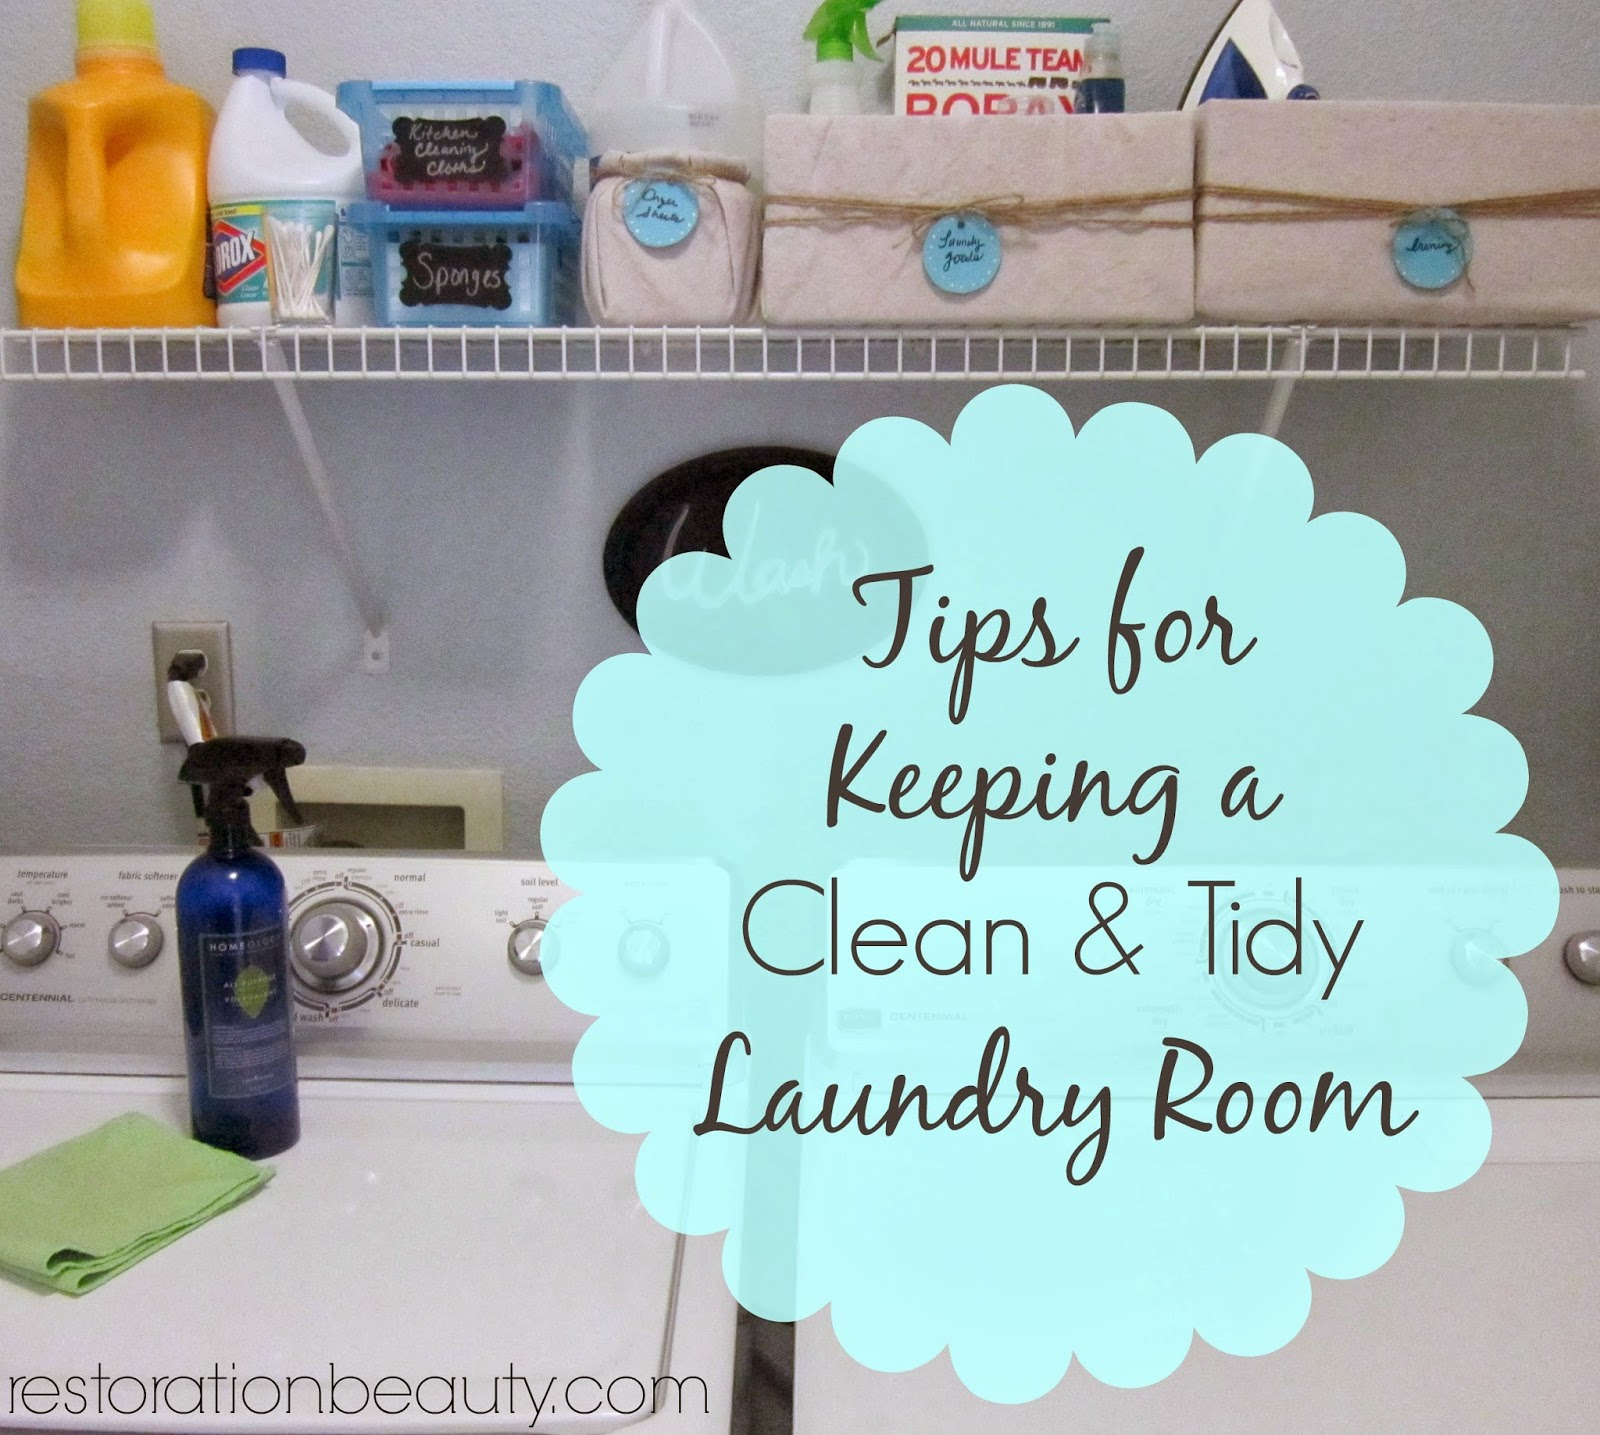 Tips for keeping a clean and organized laundry room